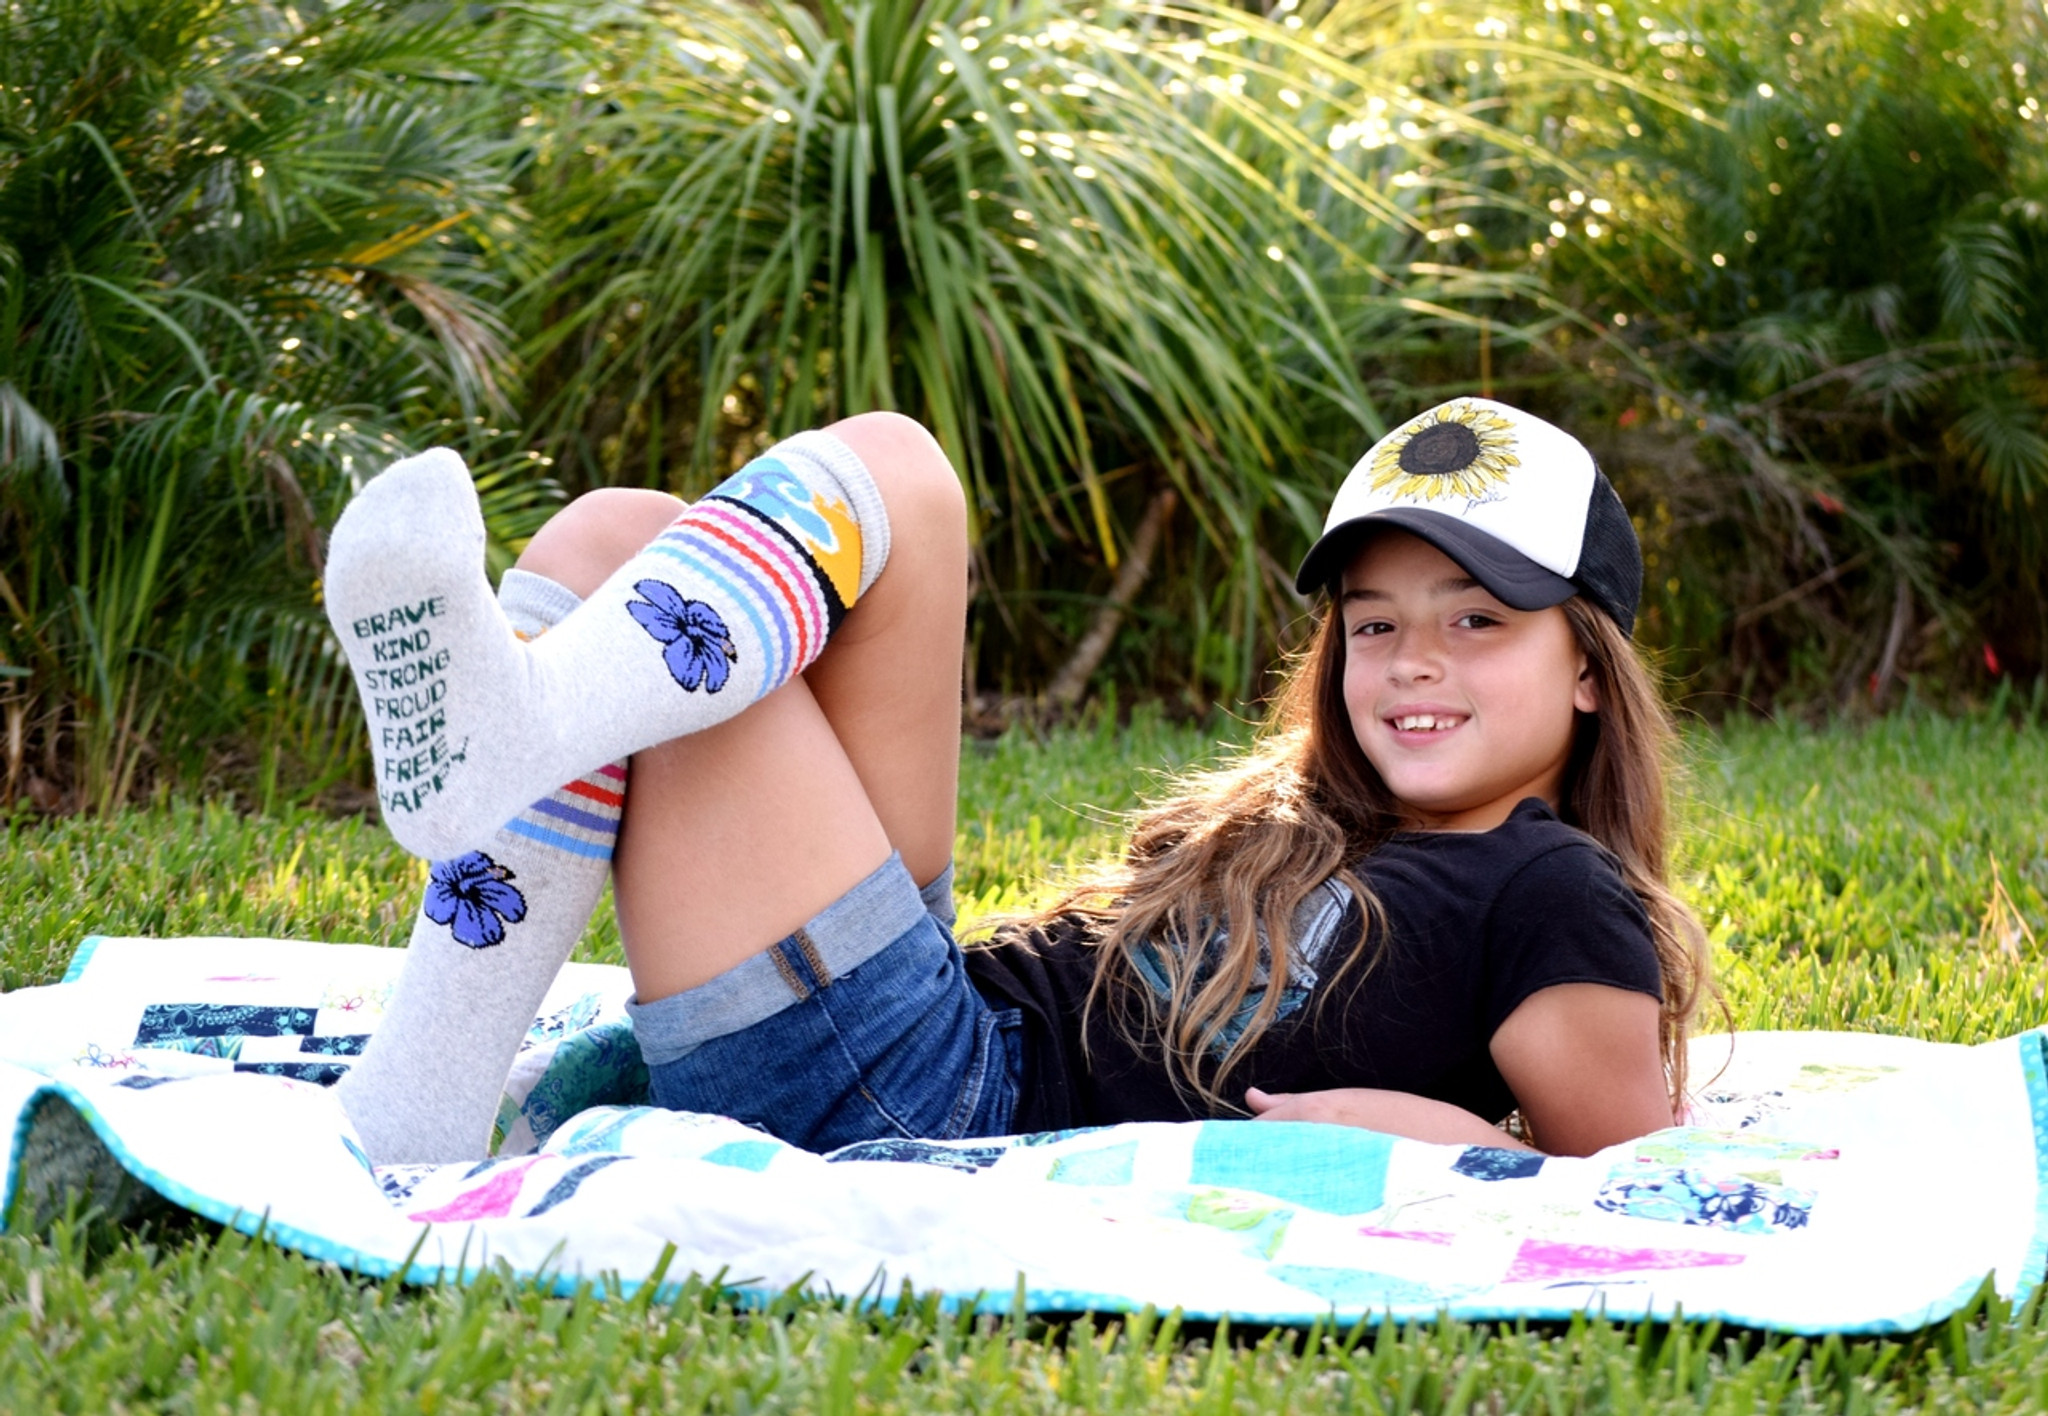 96a14d90ad5 modeling the charity sock for isf in cambodia wearing the skys the limit  socks